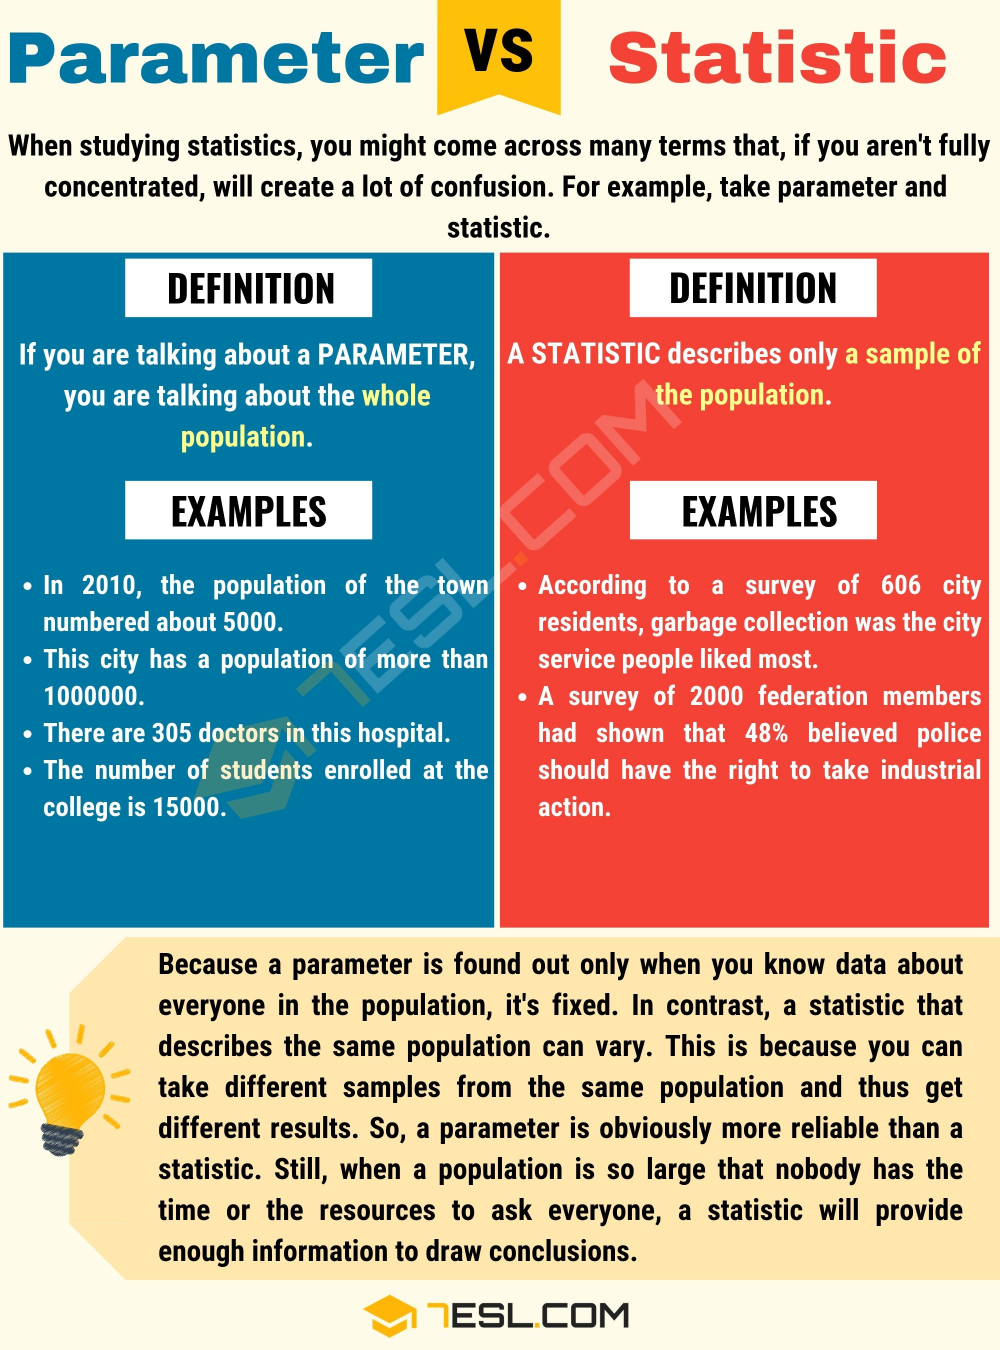 Parameter Vs Statistic When To Use Statistic Vs Parameter With